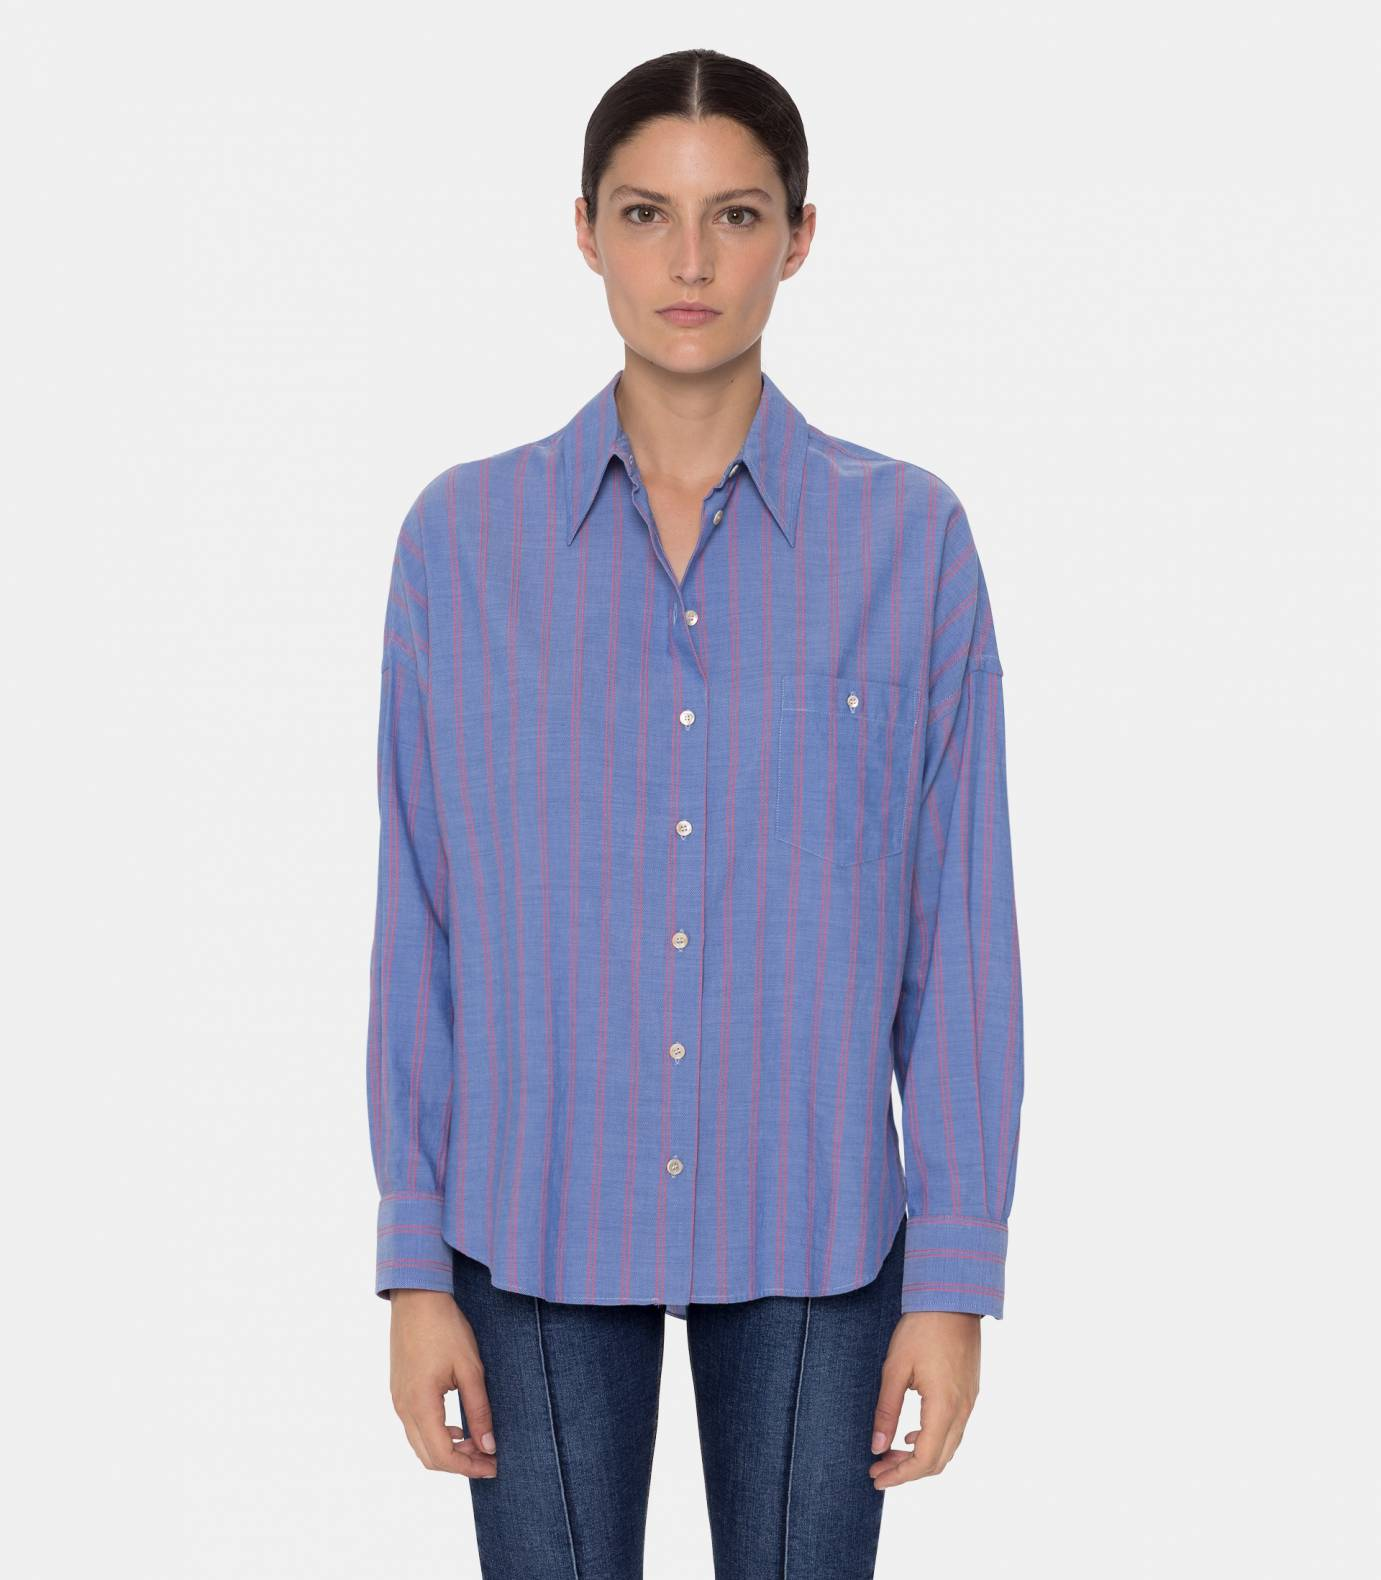 Shirt with coral stripes